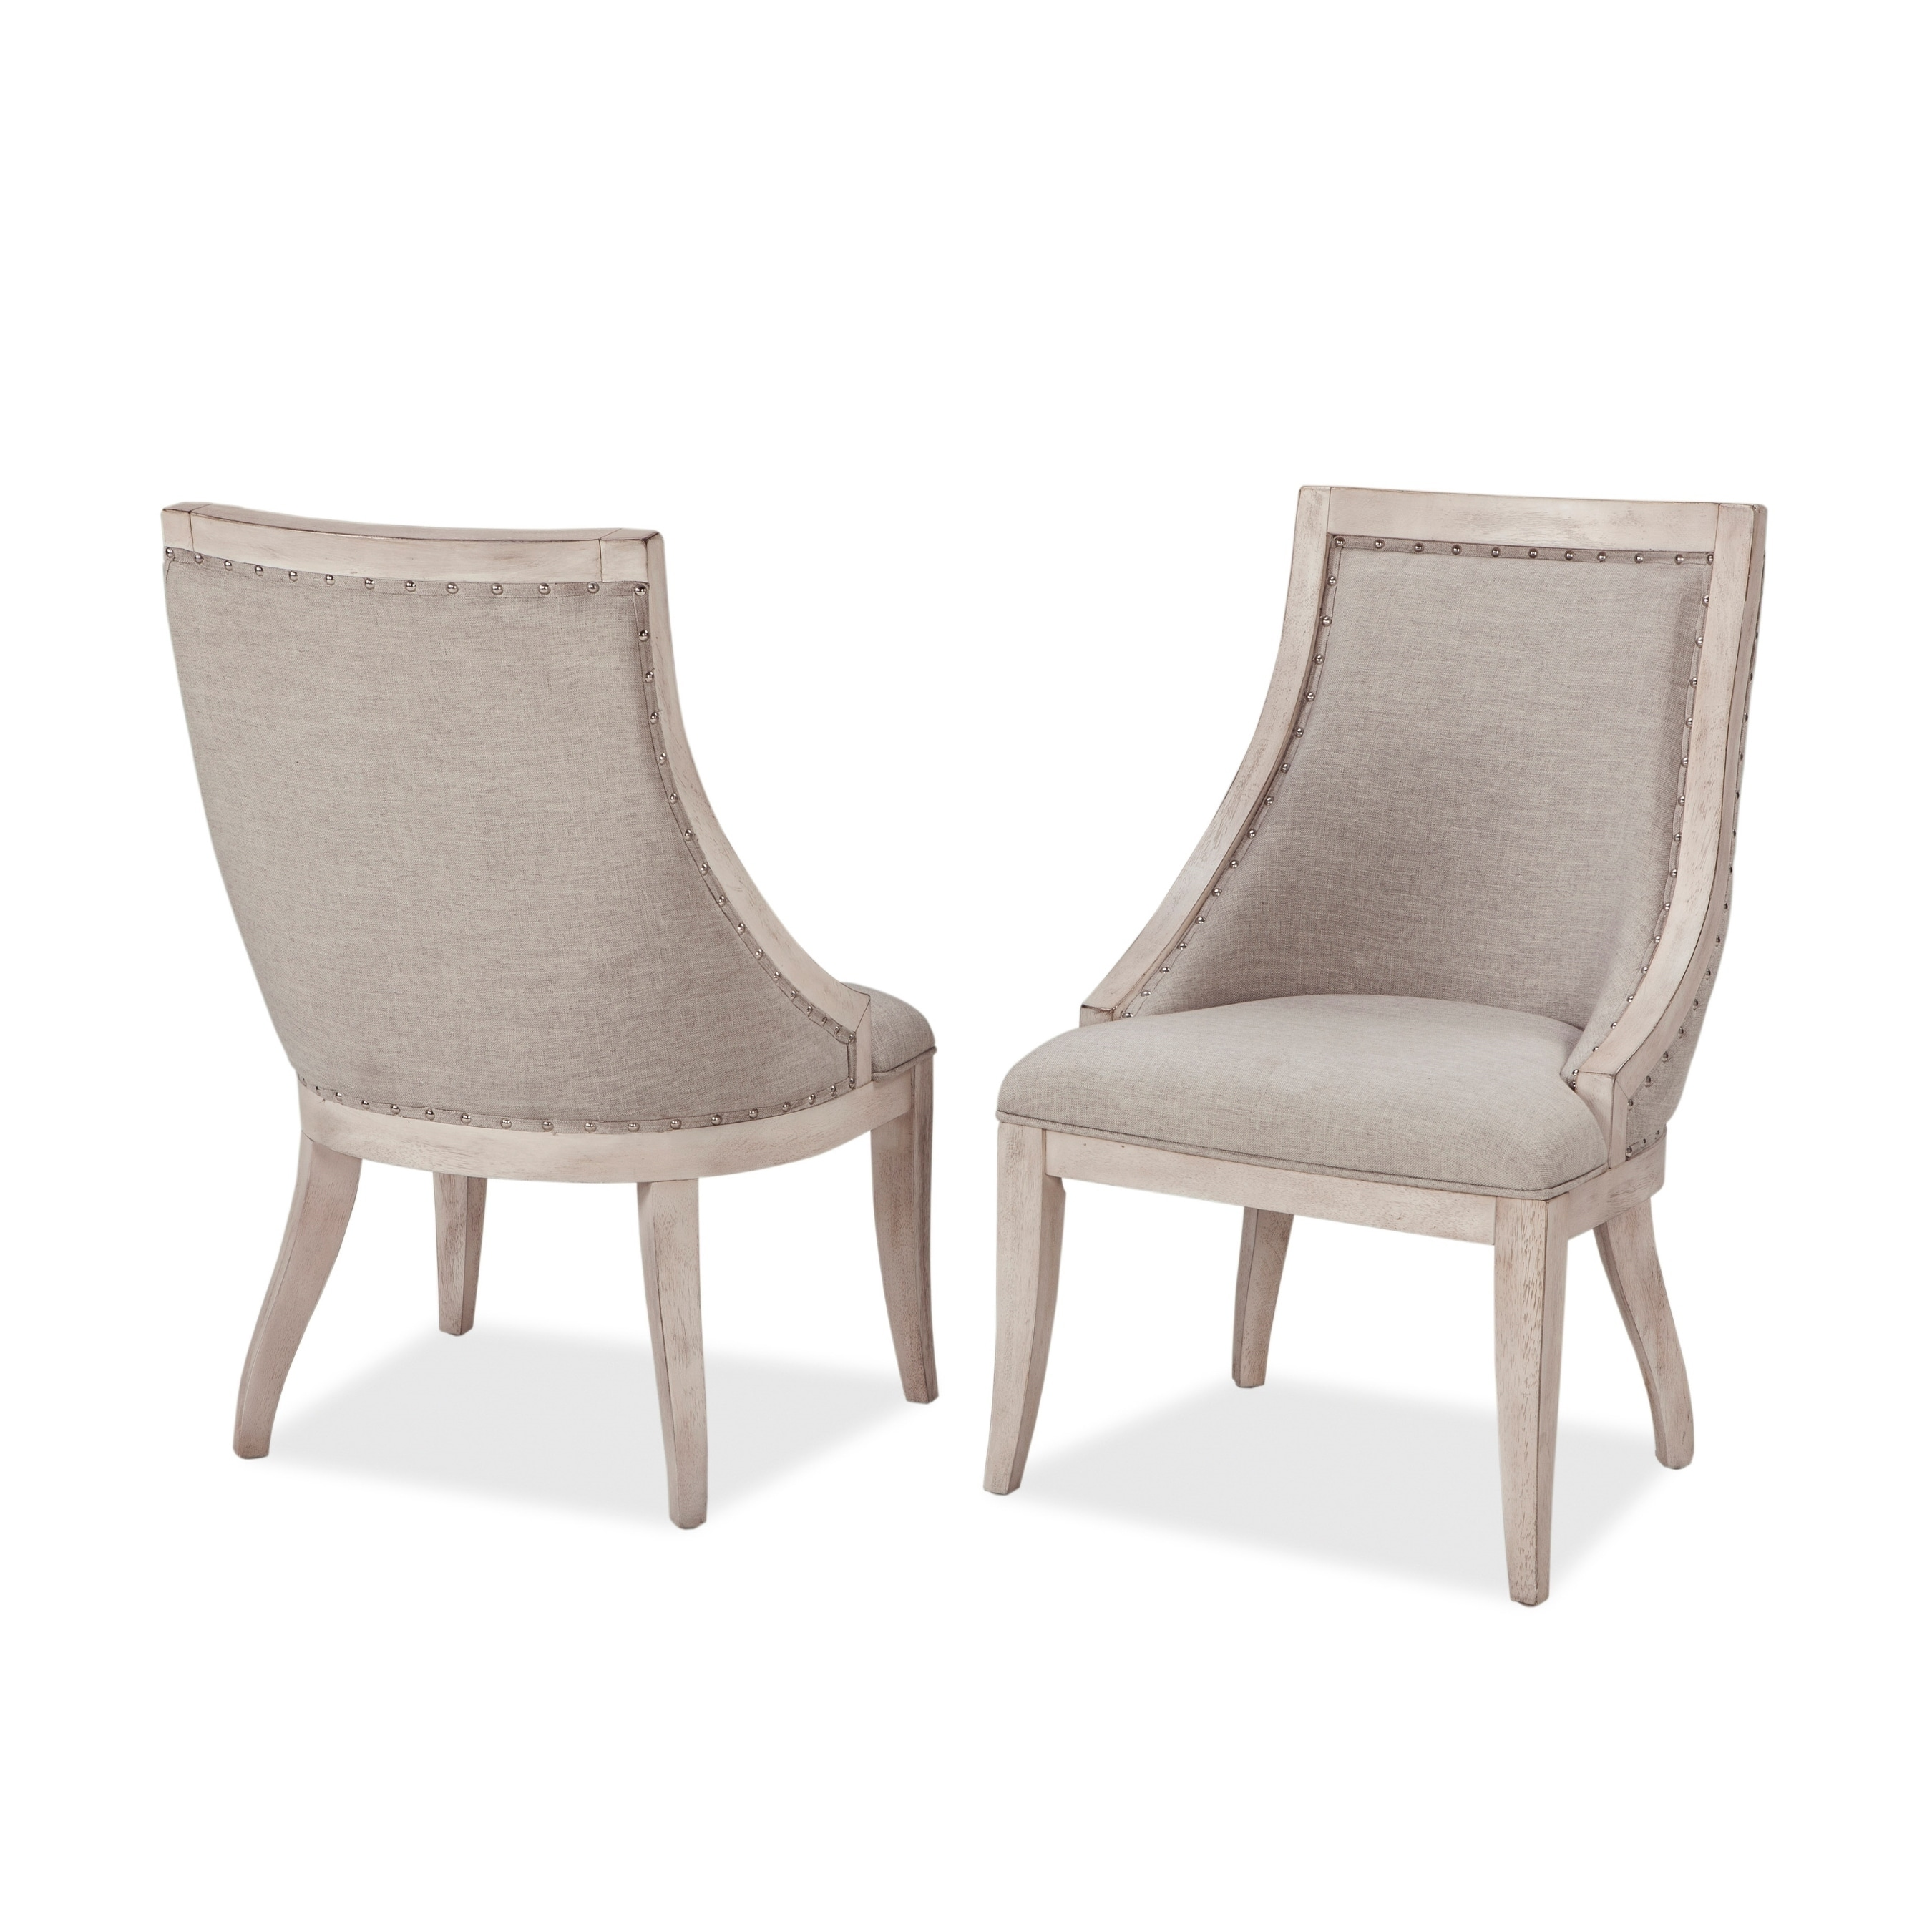 Graphite Upholstered Side Chairs By Panama Jack Set Of 2 Overstock 22898217